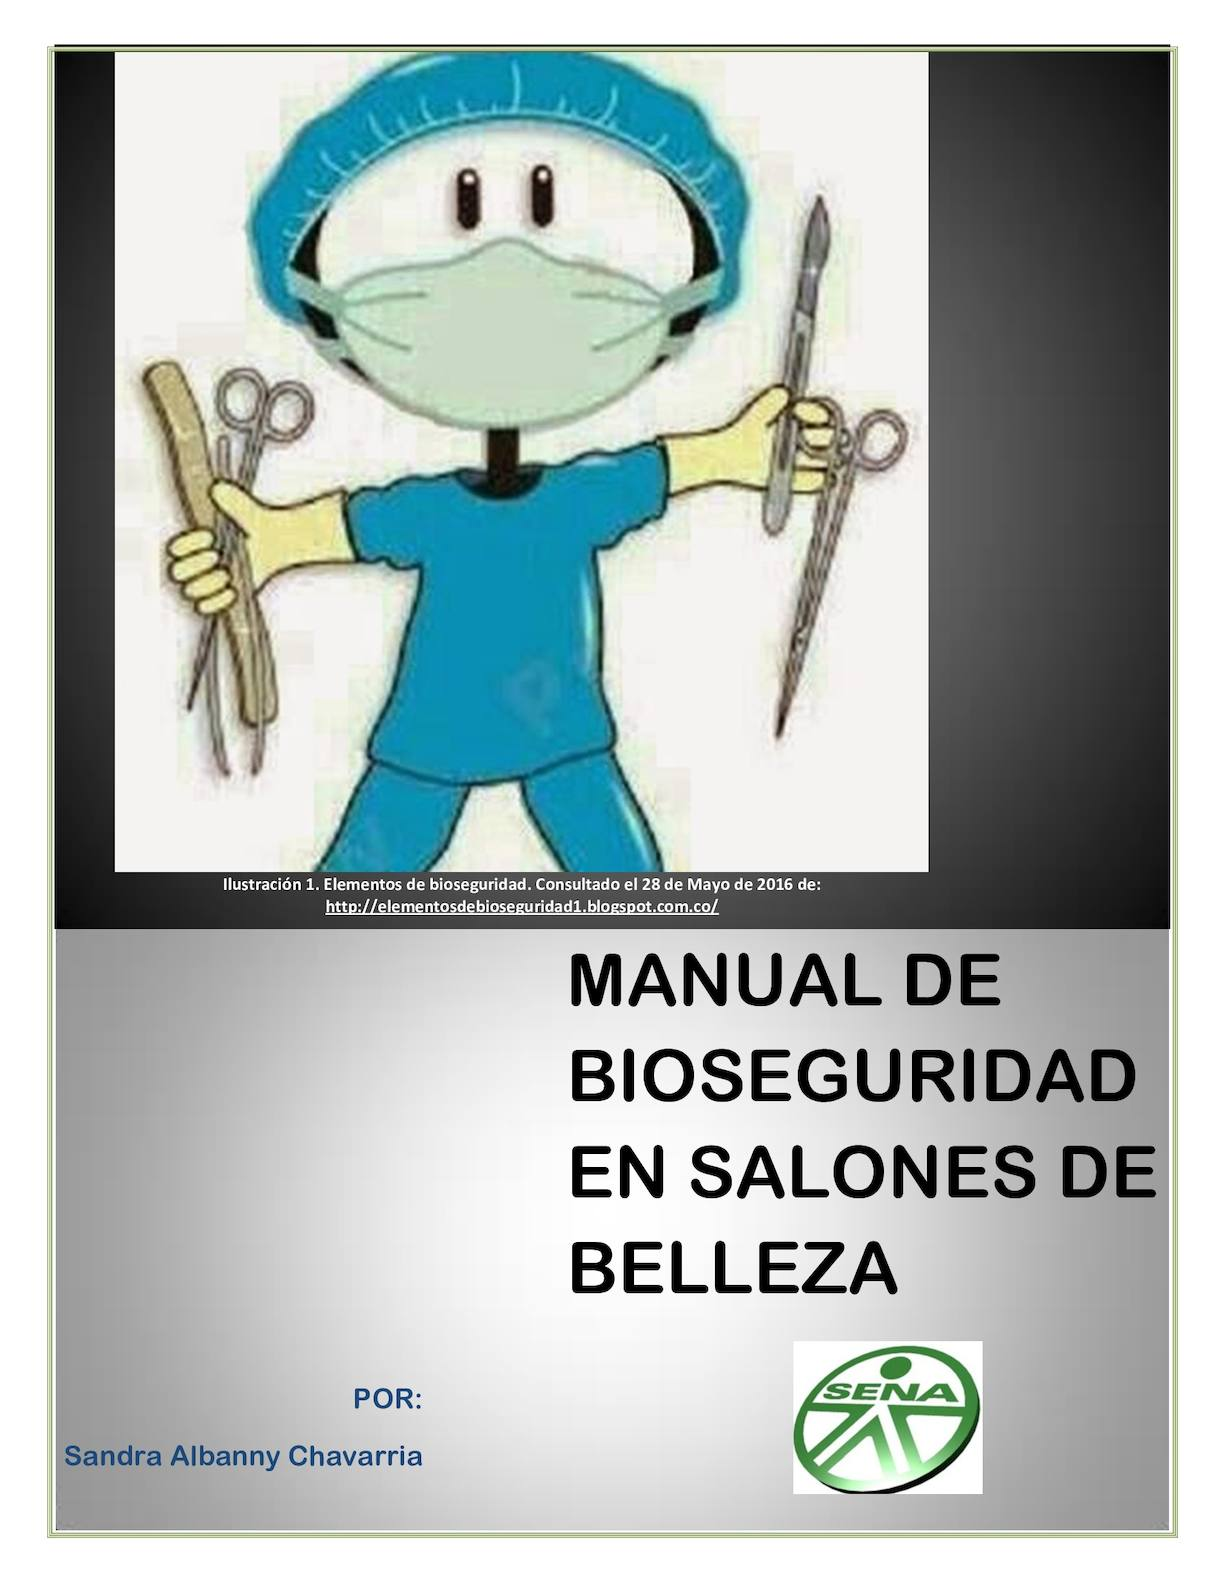 Calam o manual de bioseguridad for Administrar un salon de belleza